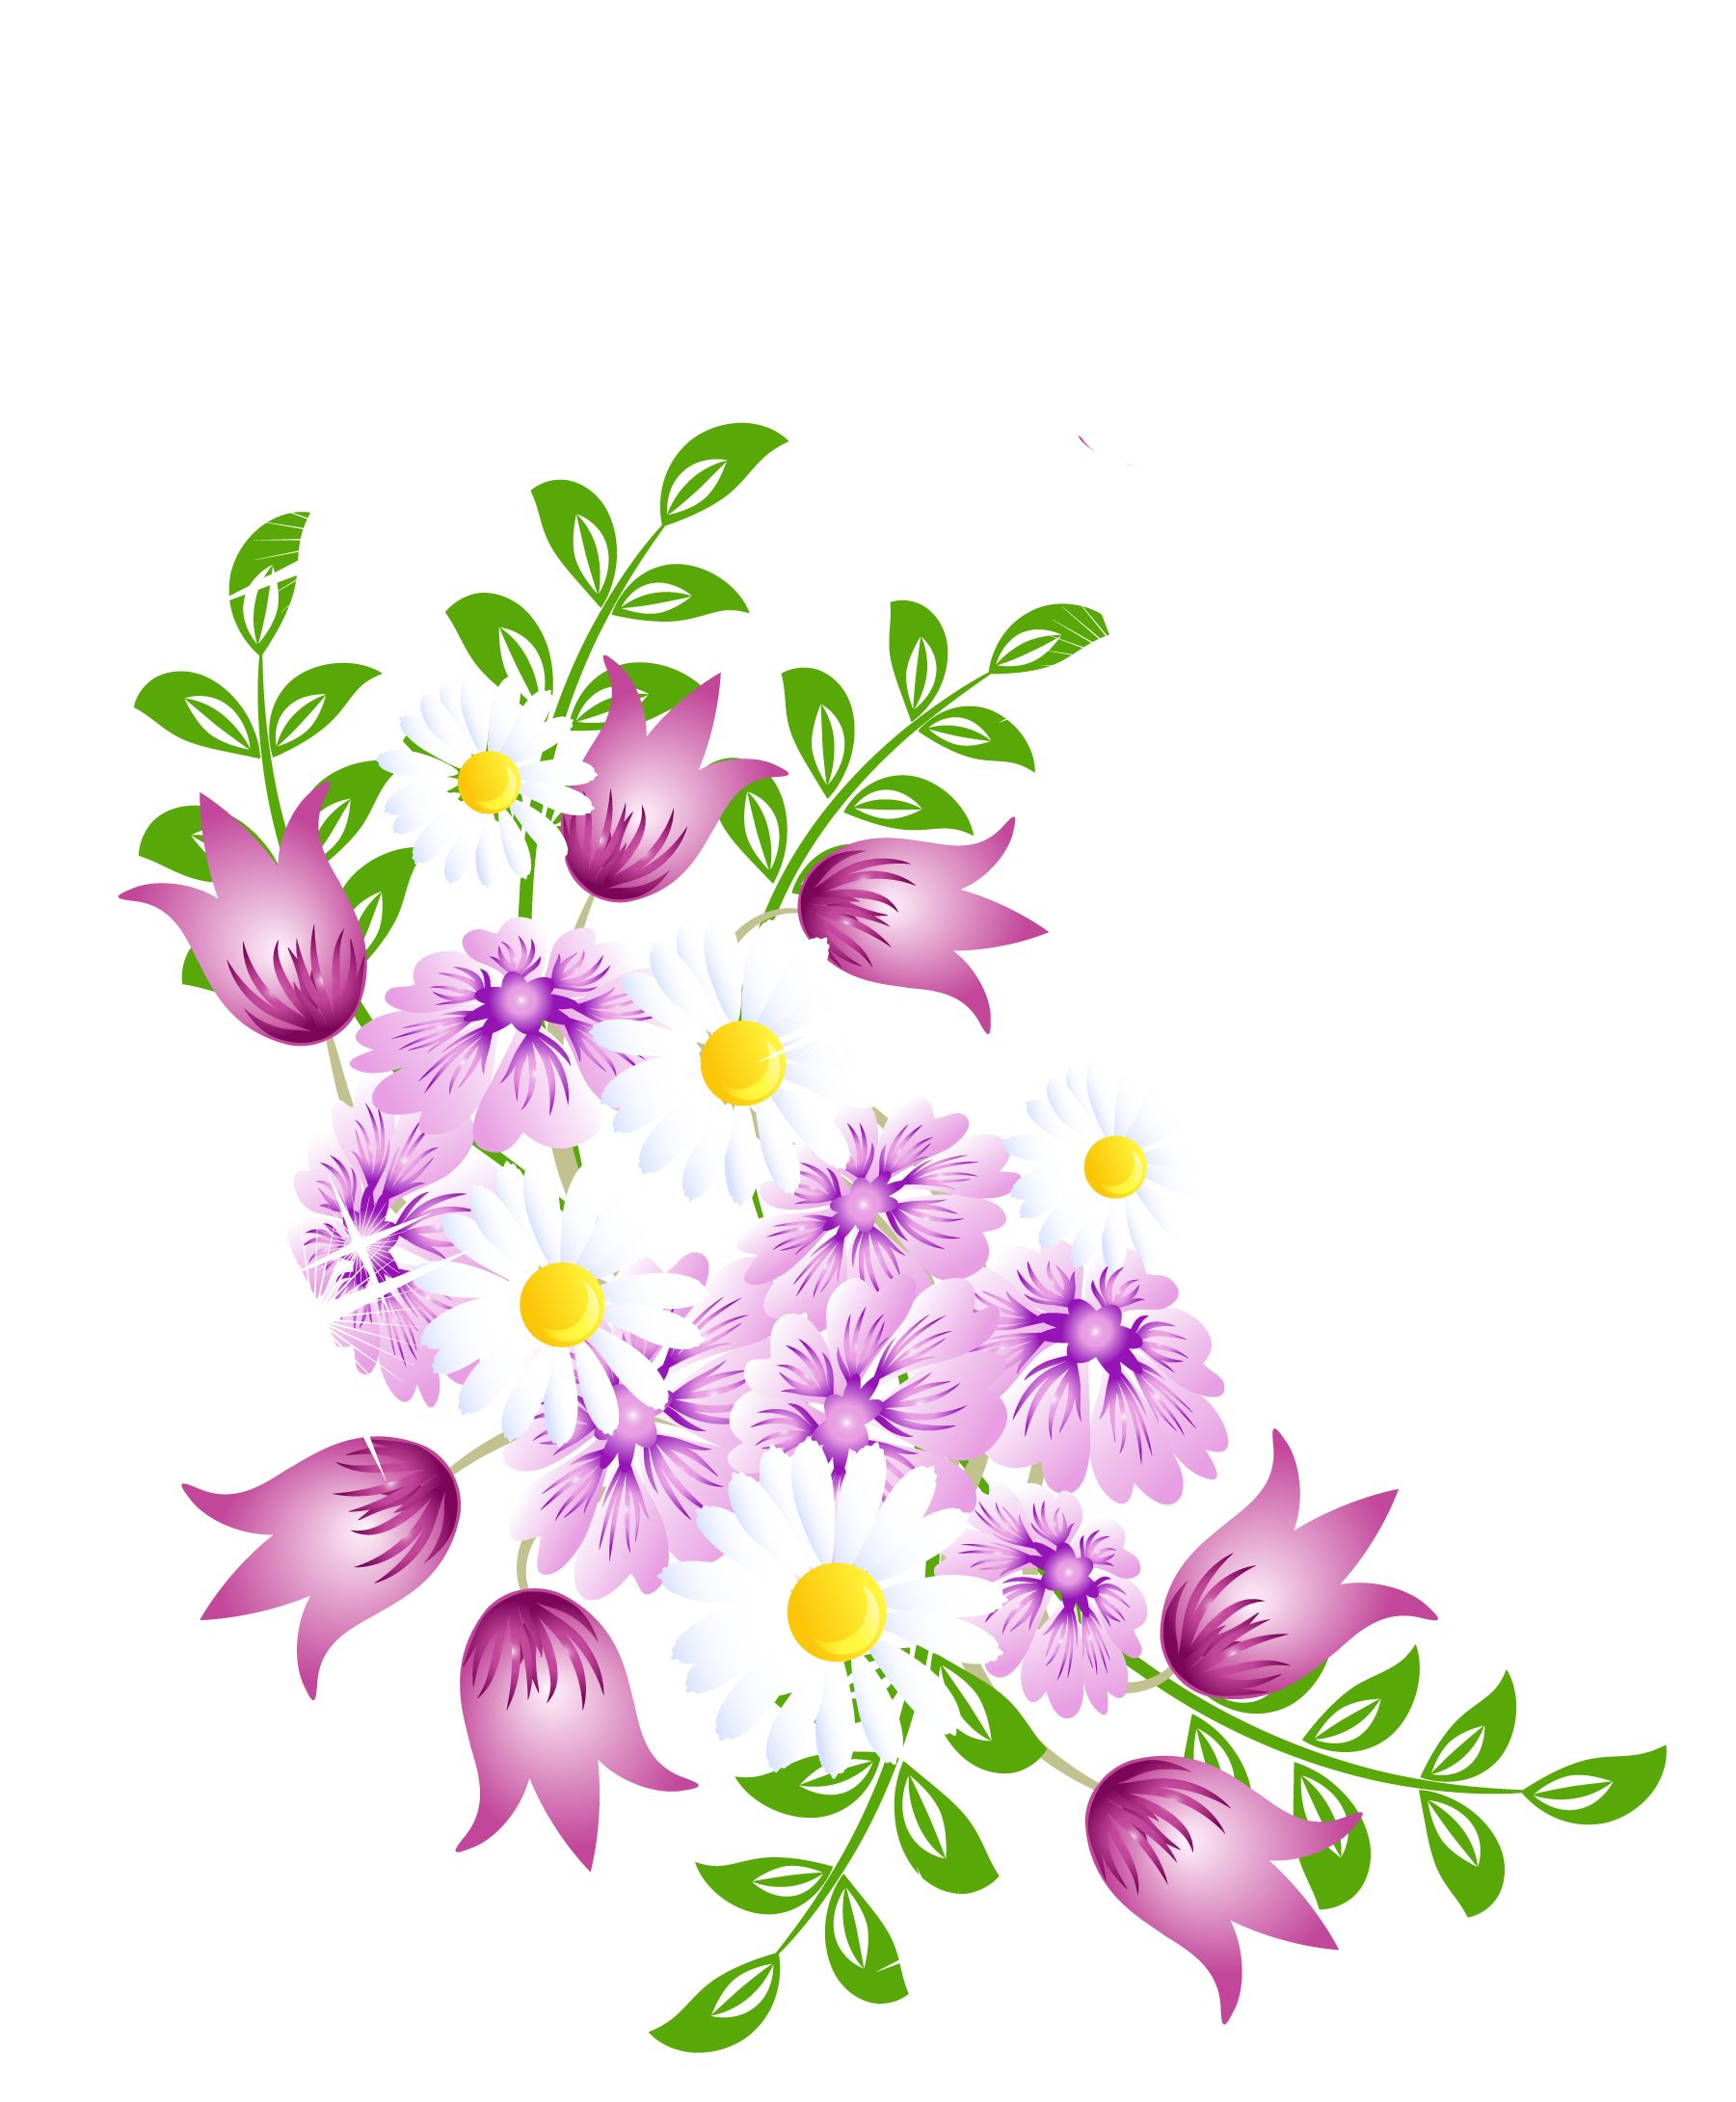 Spring flowers decor png. E clipart flower